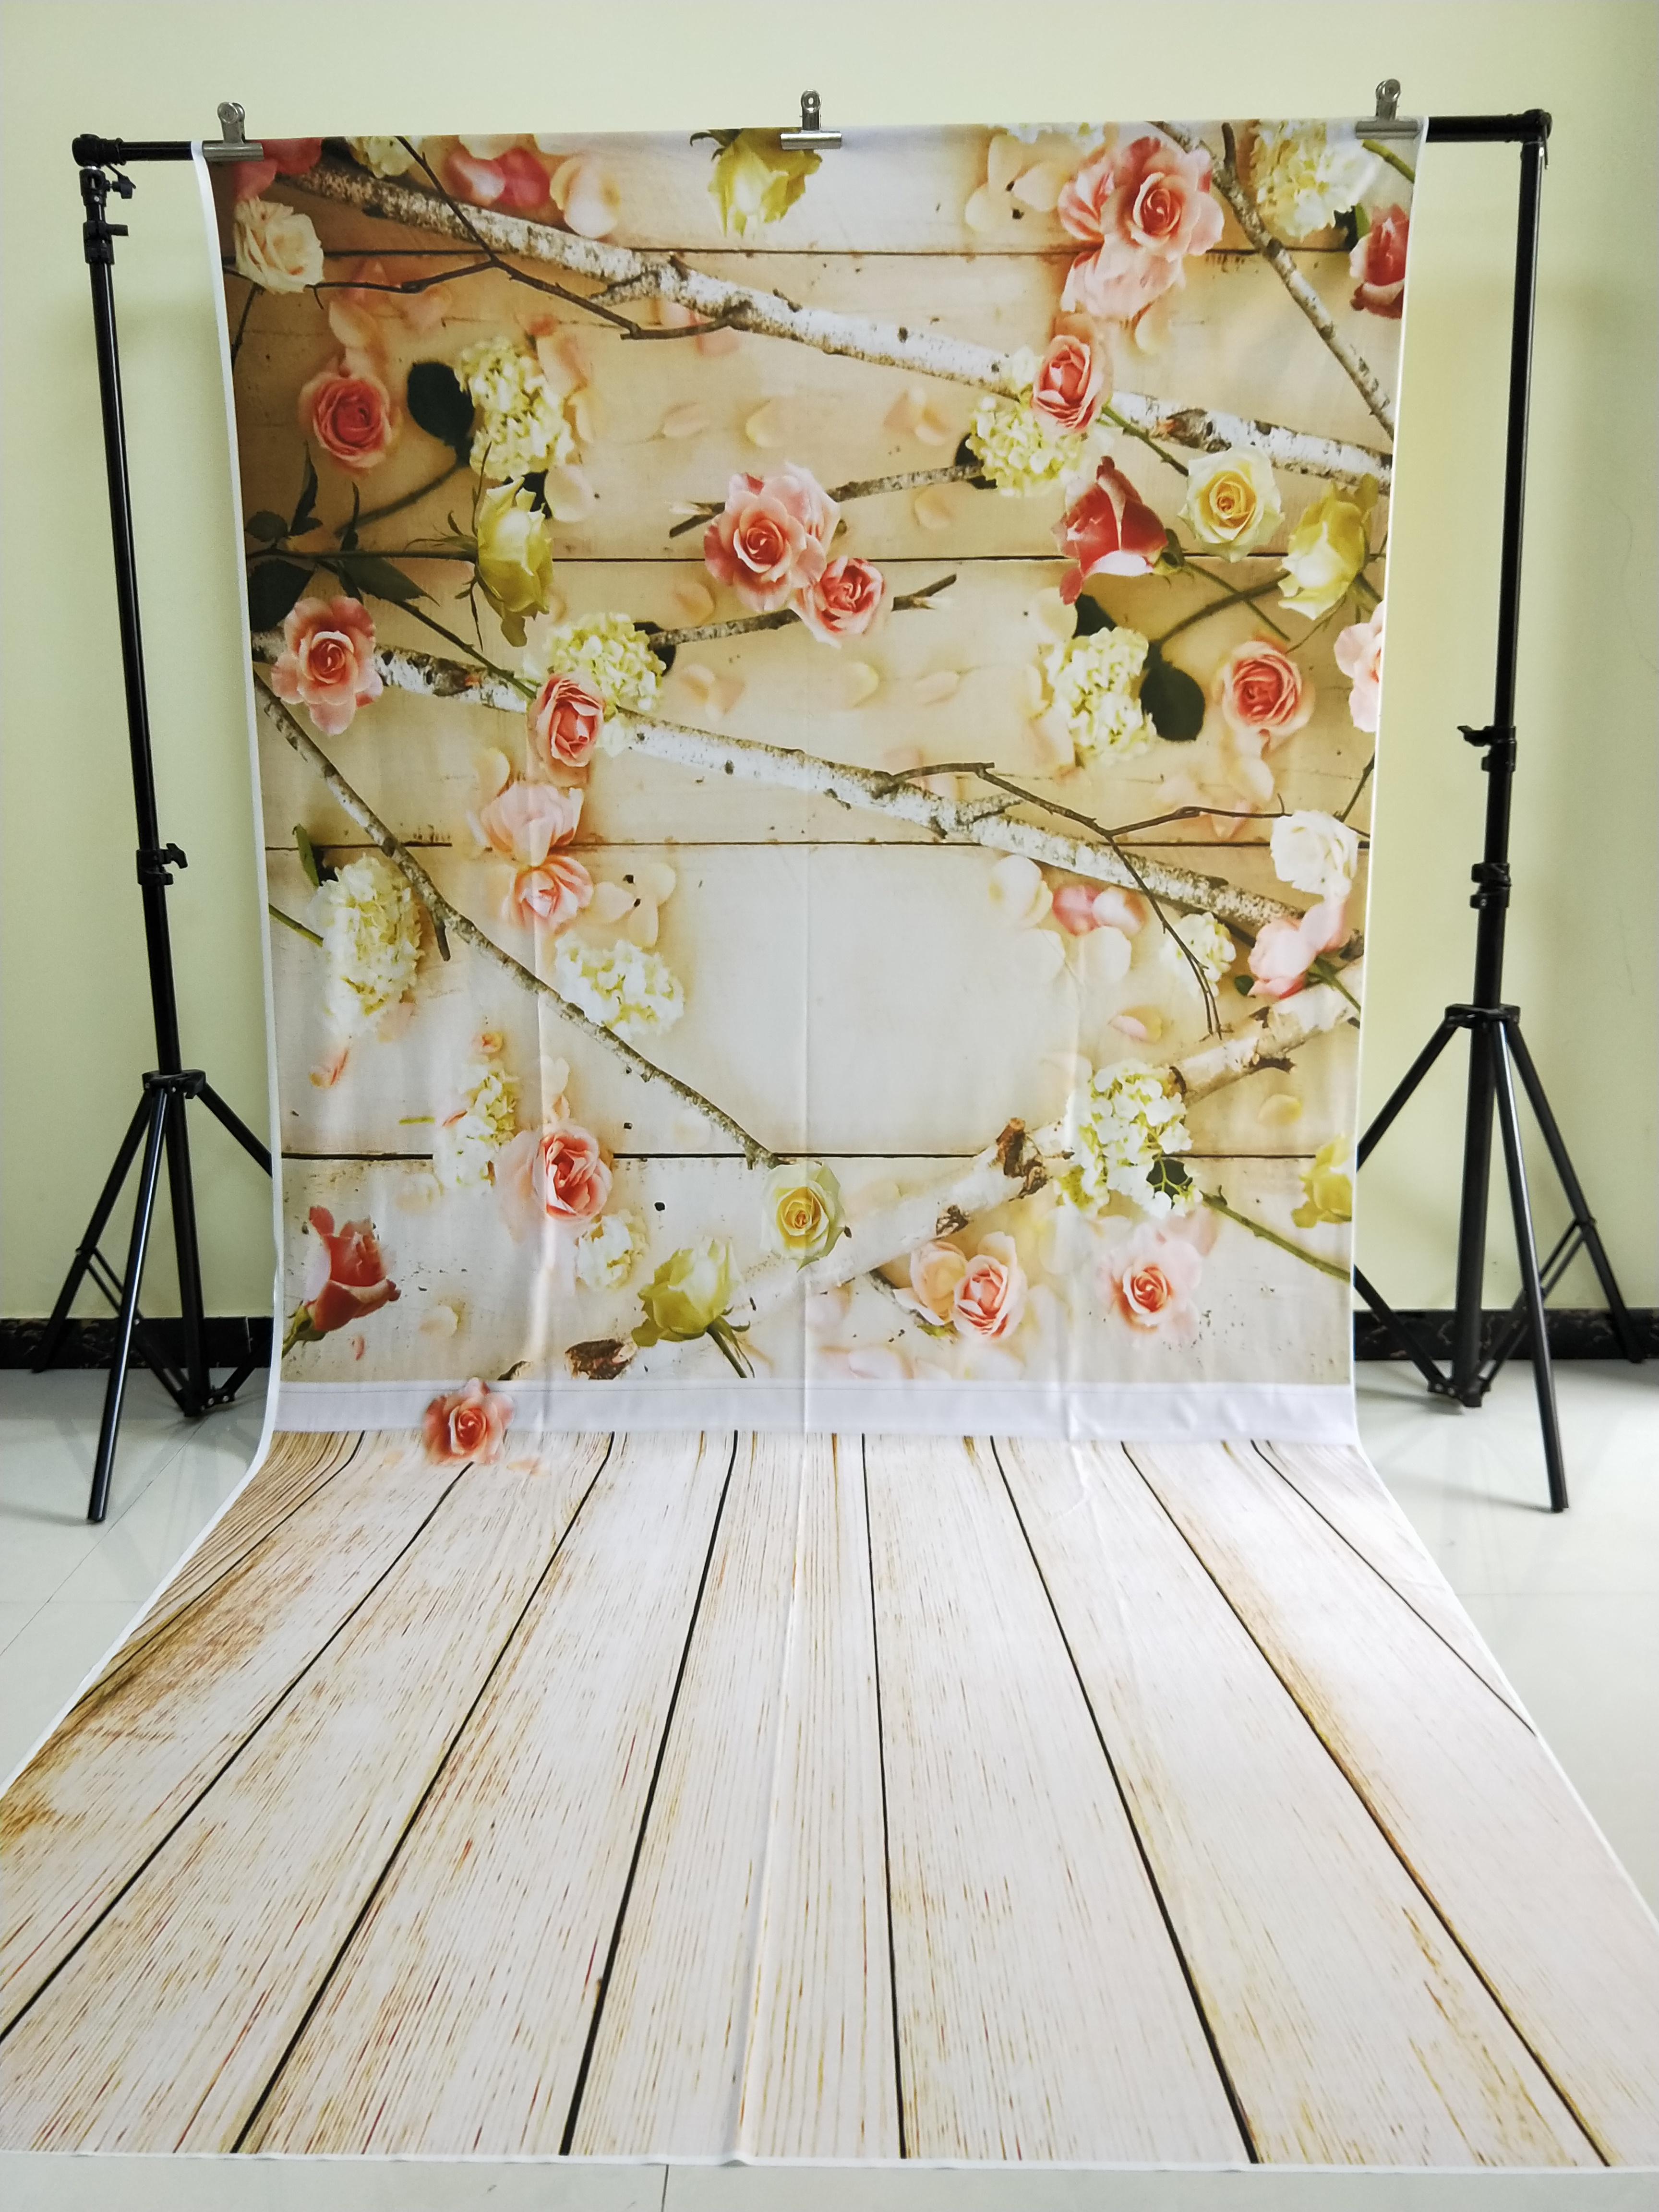 HUAYI 5x10ft Cotton Polyester Wood Floor Flowers Photography Backdrop Washable Photo Studios Baby Props Background KP-336 huayi 4pc 2x2ft wood floor brick wall backdrop vinyl photography backdrops photo props background small object shooting gy 019